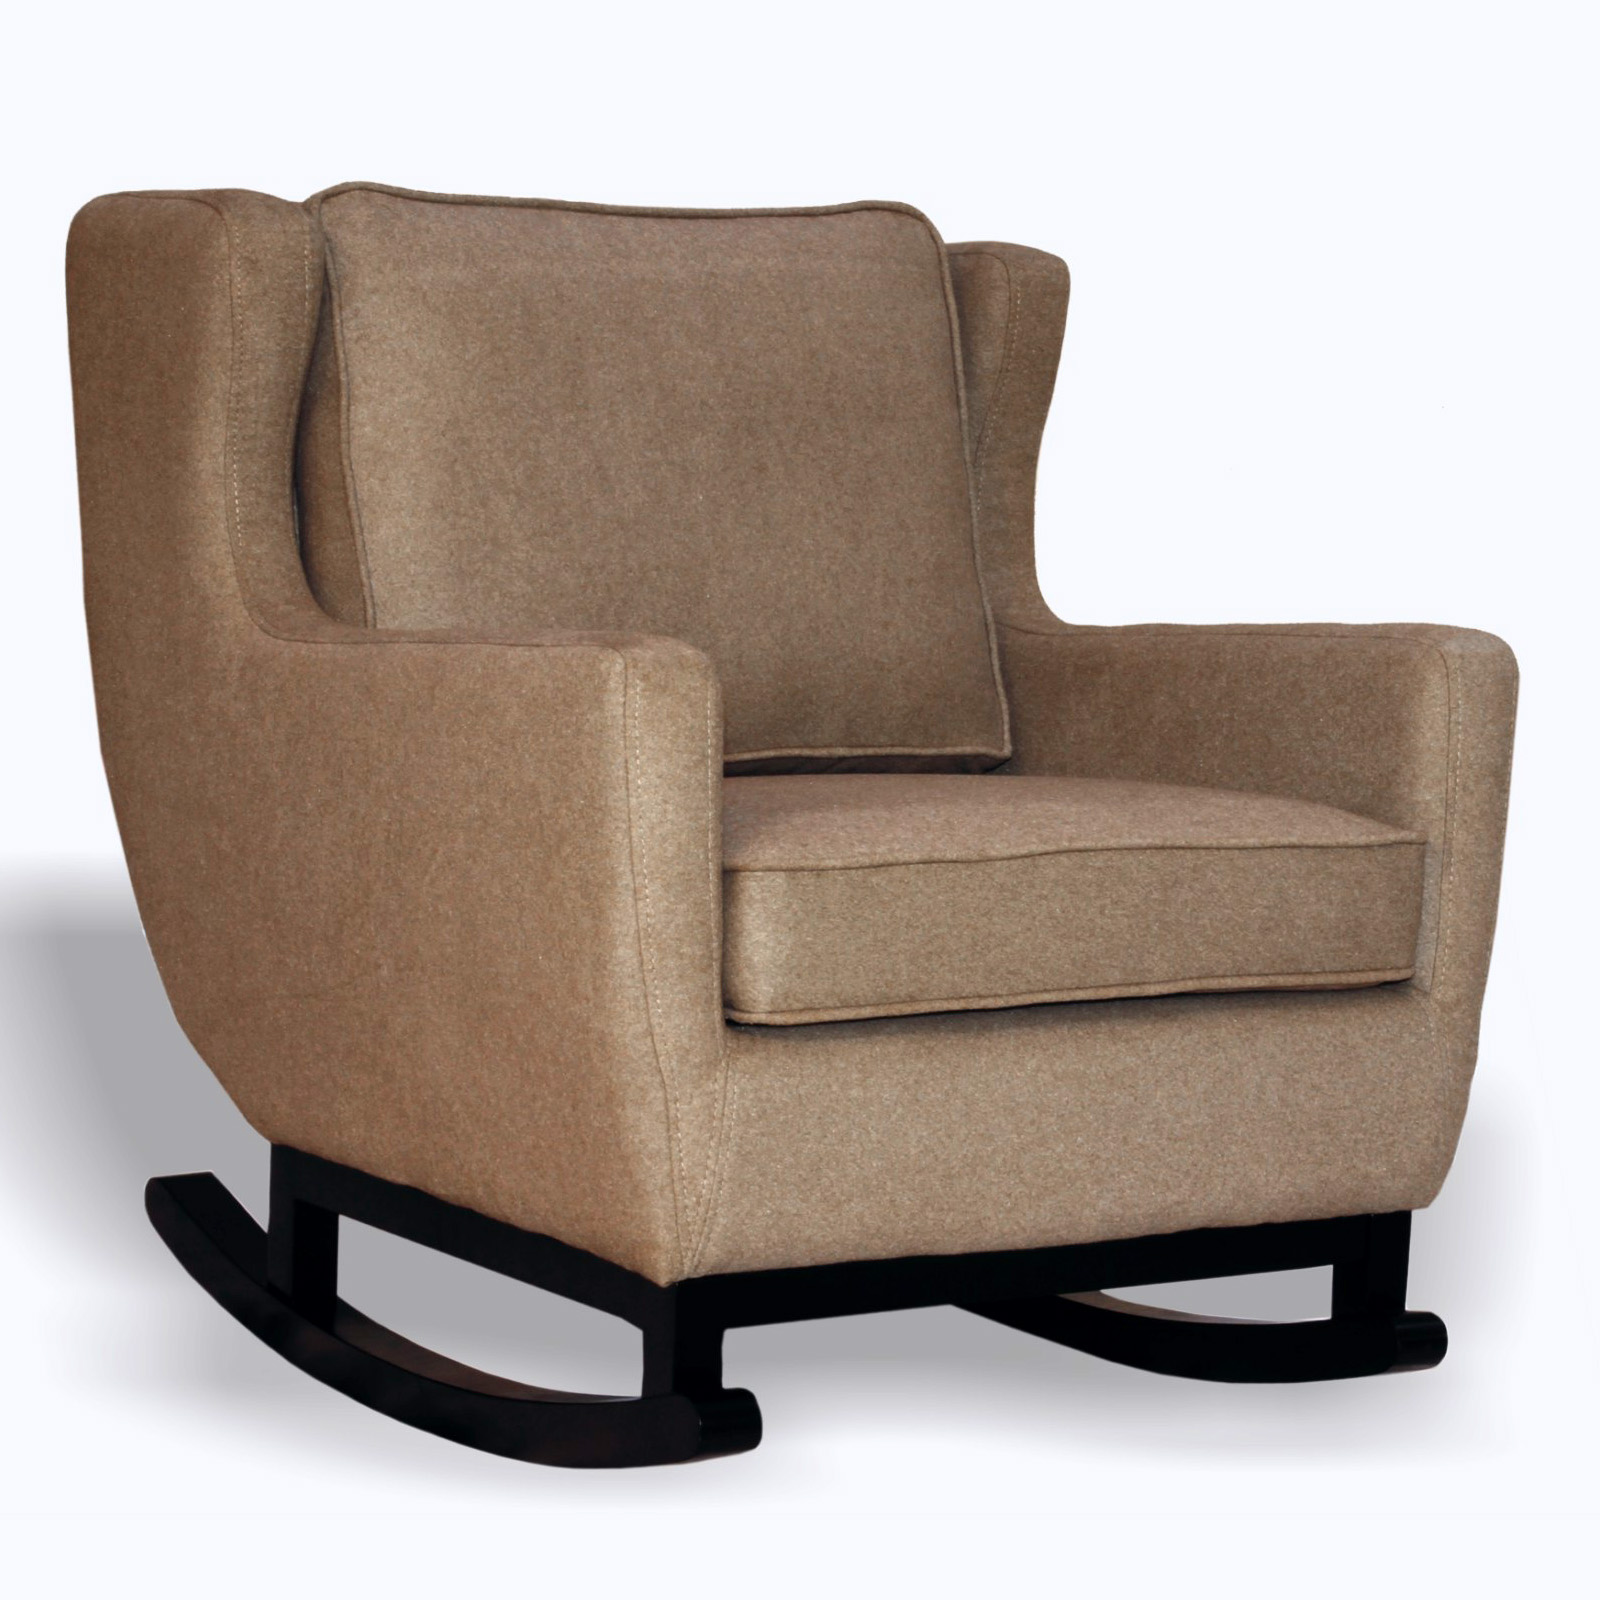 Upholstered Rocking Chair Belham Living Upholstered Rocking Chair Espresso At